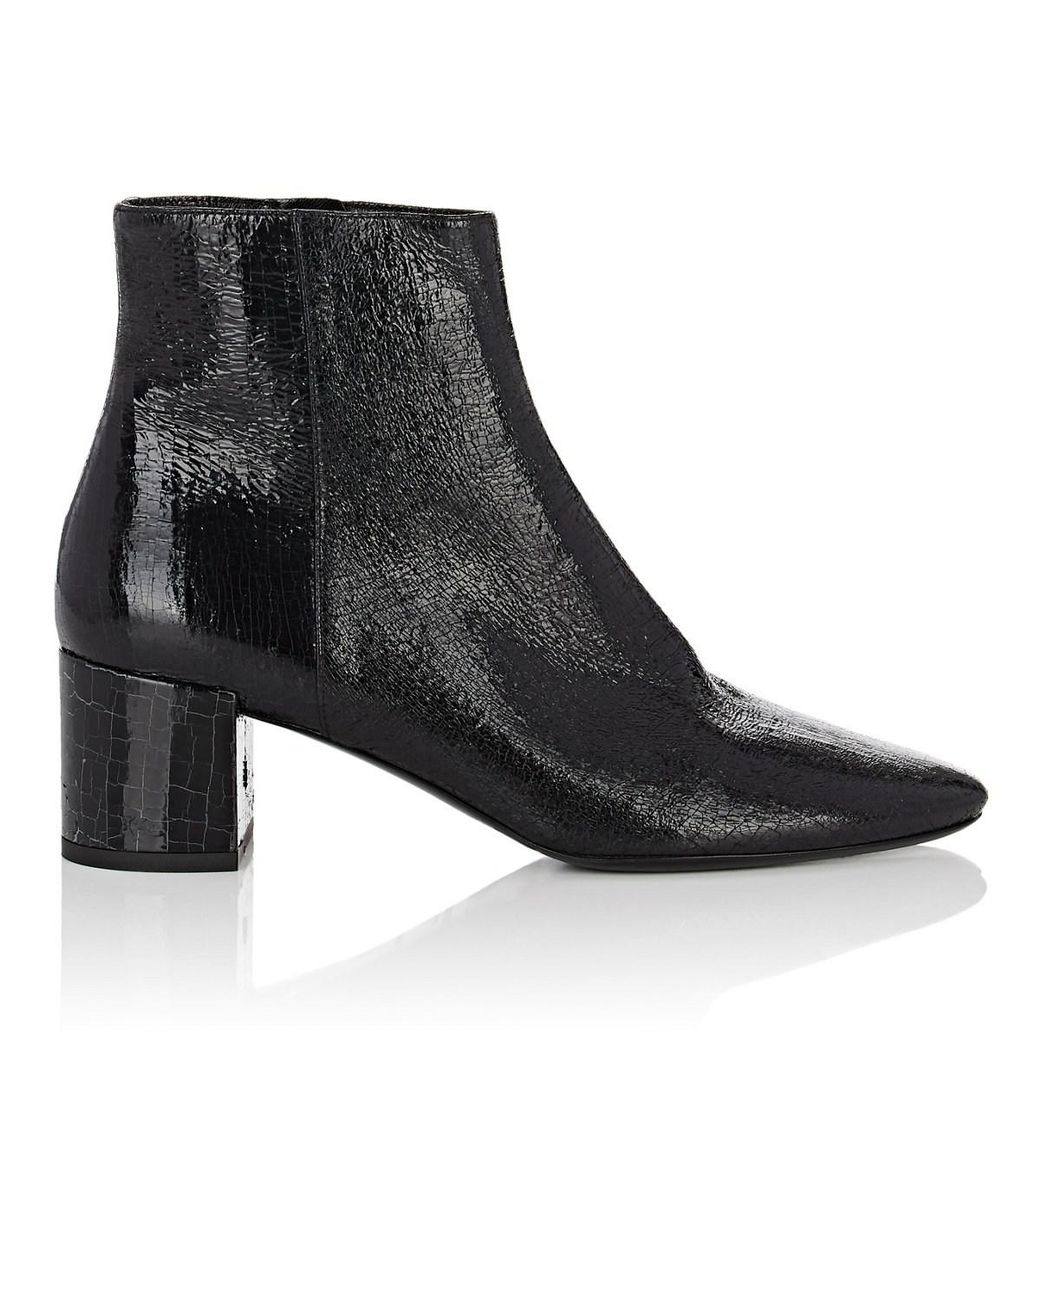 0828e758fee1 Lyst - Saint Laurent Loulou Cracked Leather Ankle Boots in Black